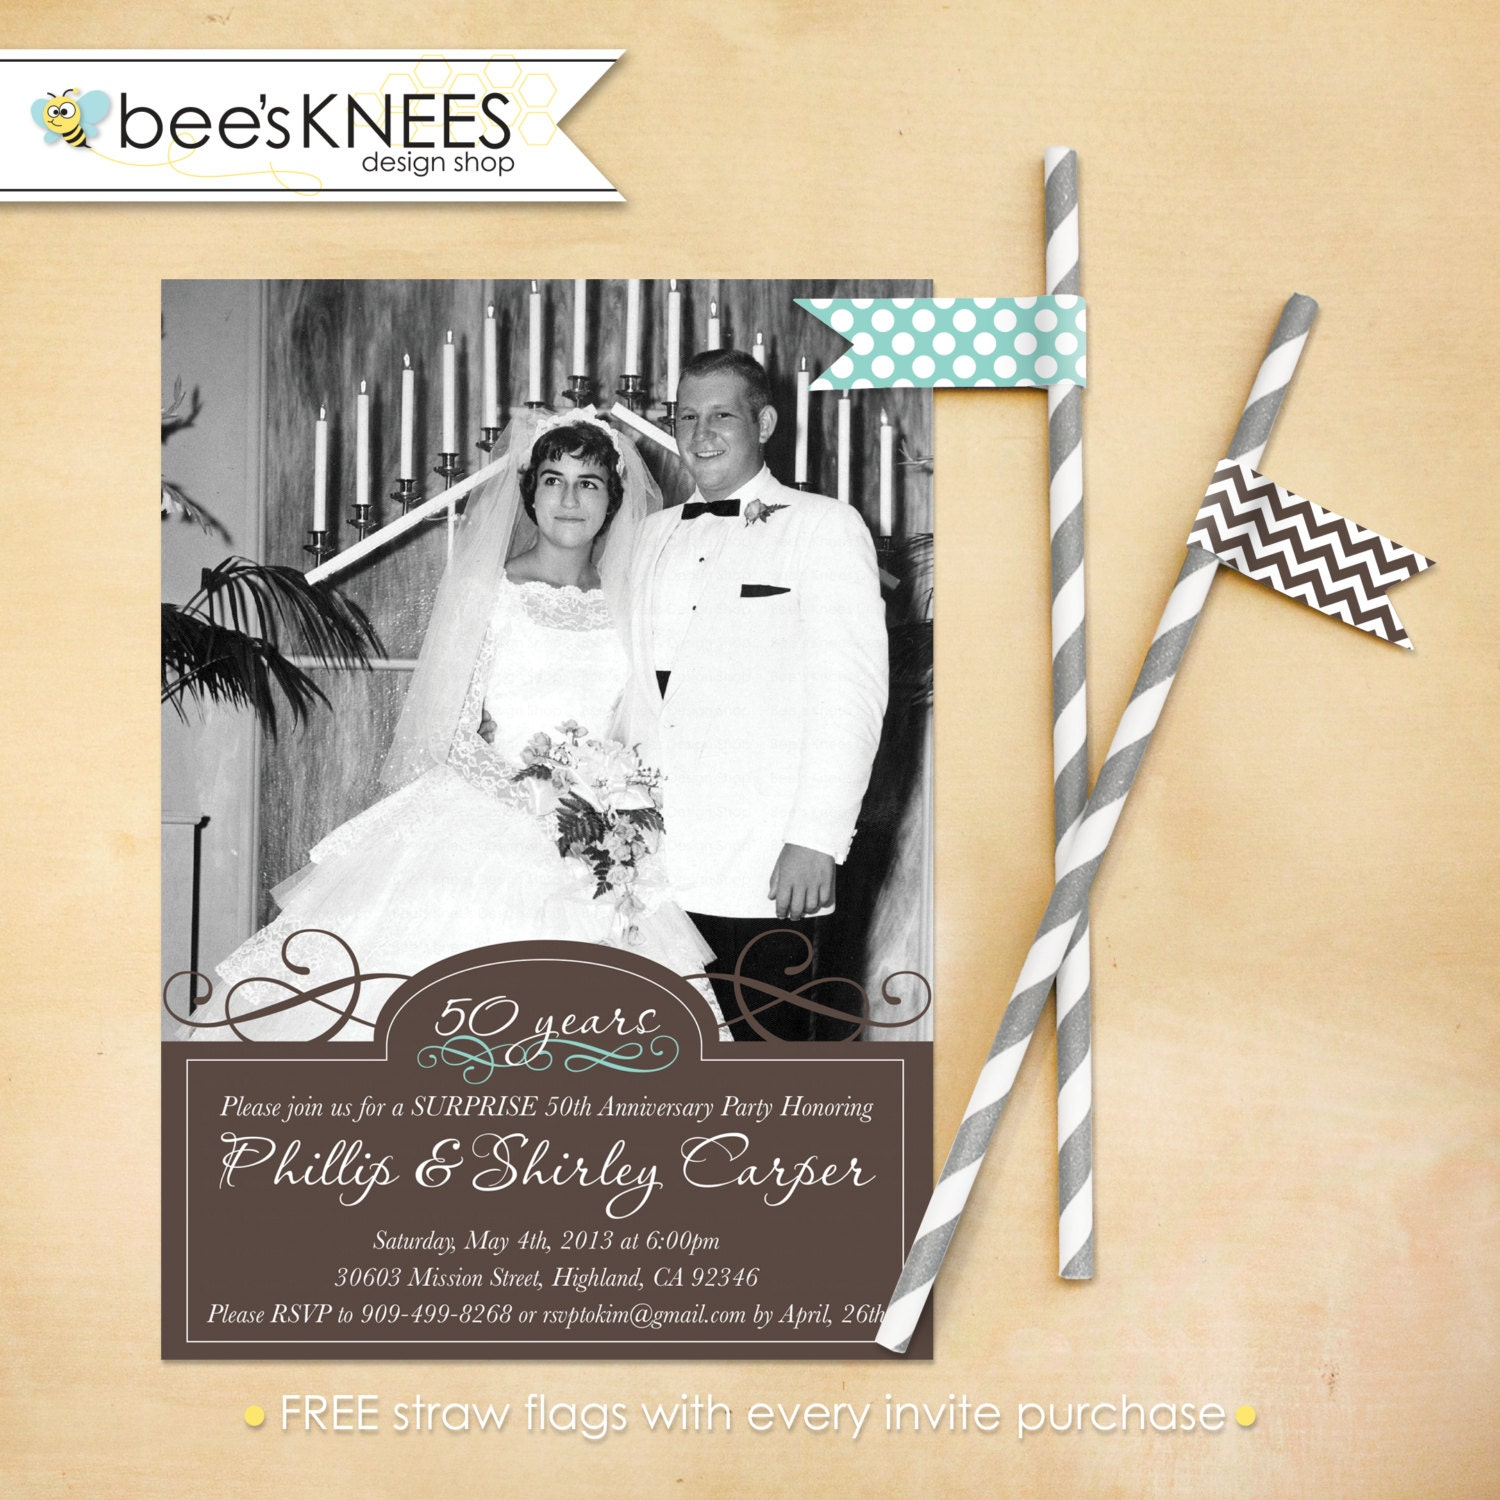 25th 50th wedding anniversary invitation 50th wedding anniversary invitations 25th 50th Wedding Anniversary Invitation Will work for any anniversary Customized for you zoom